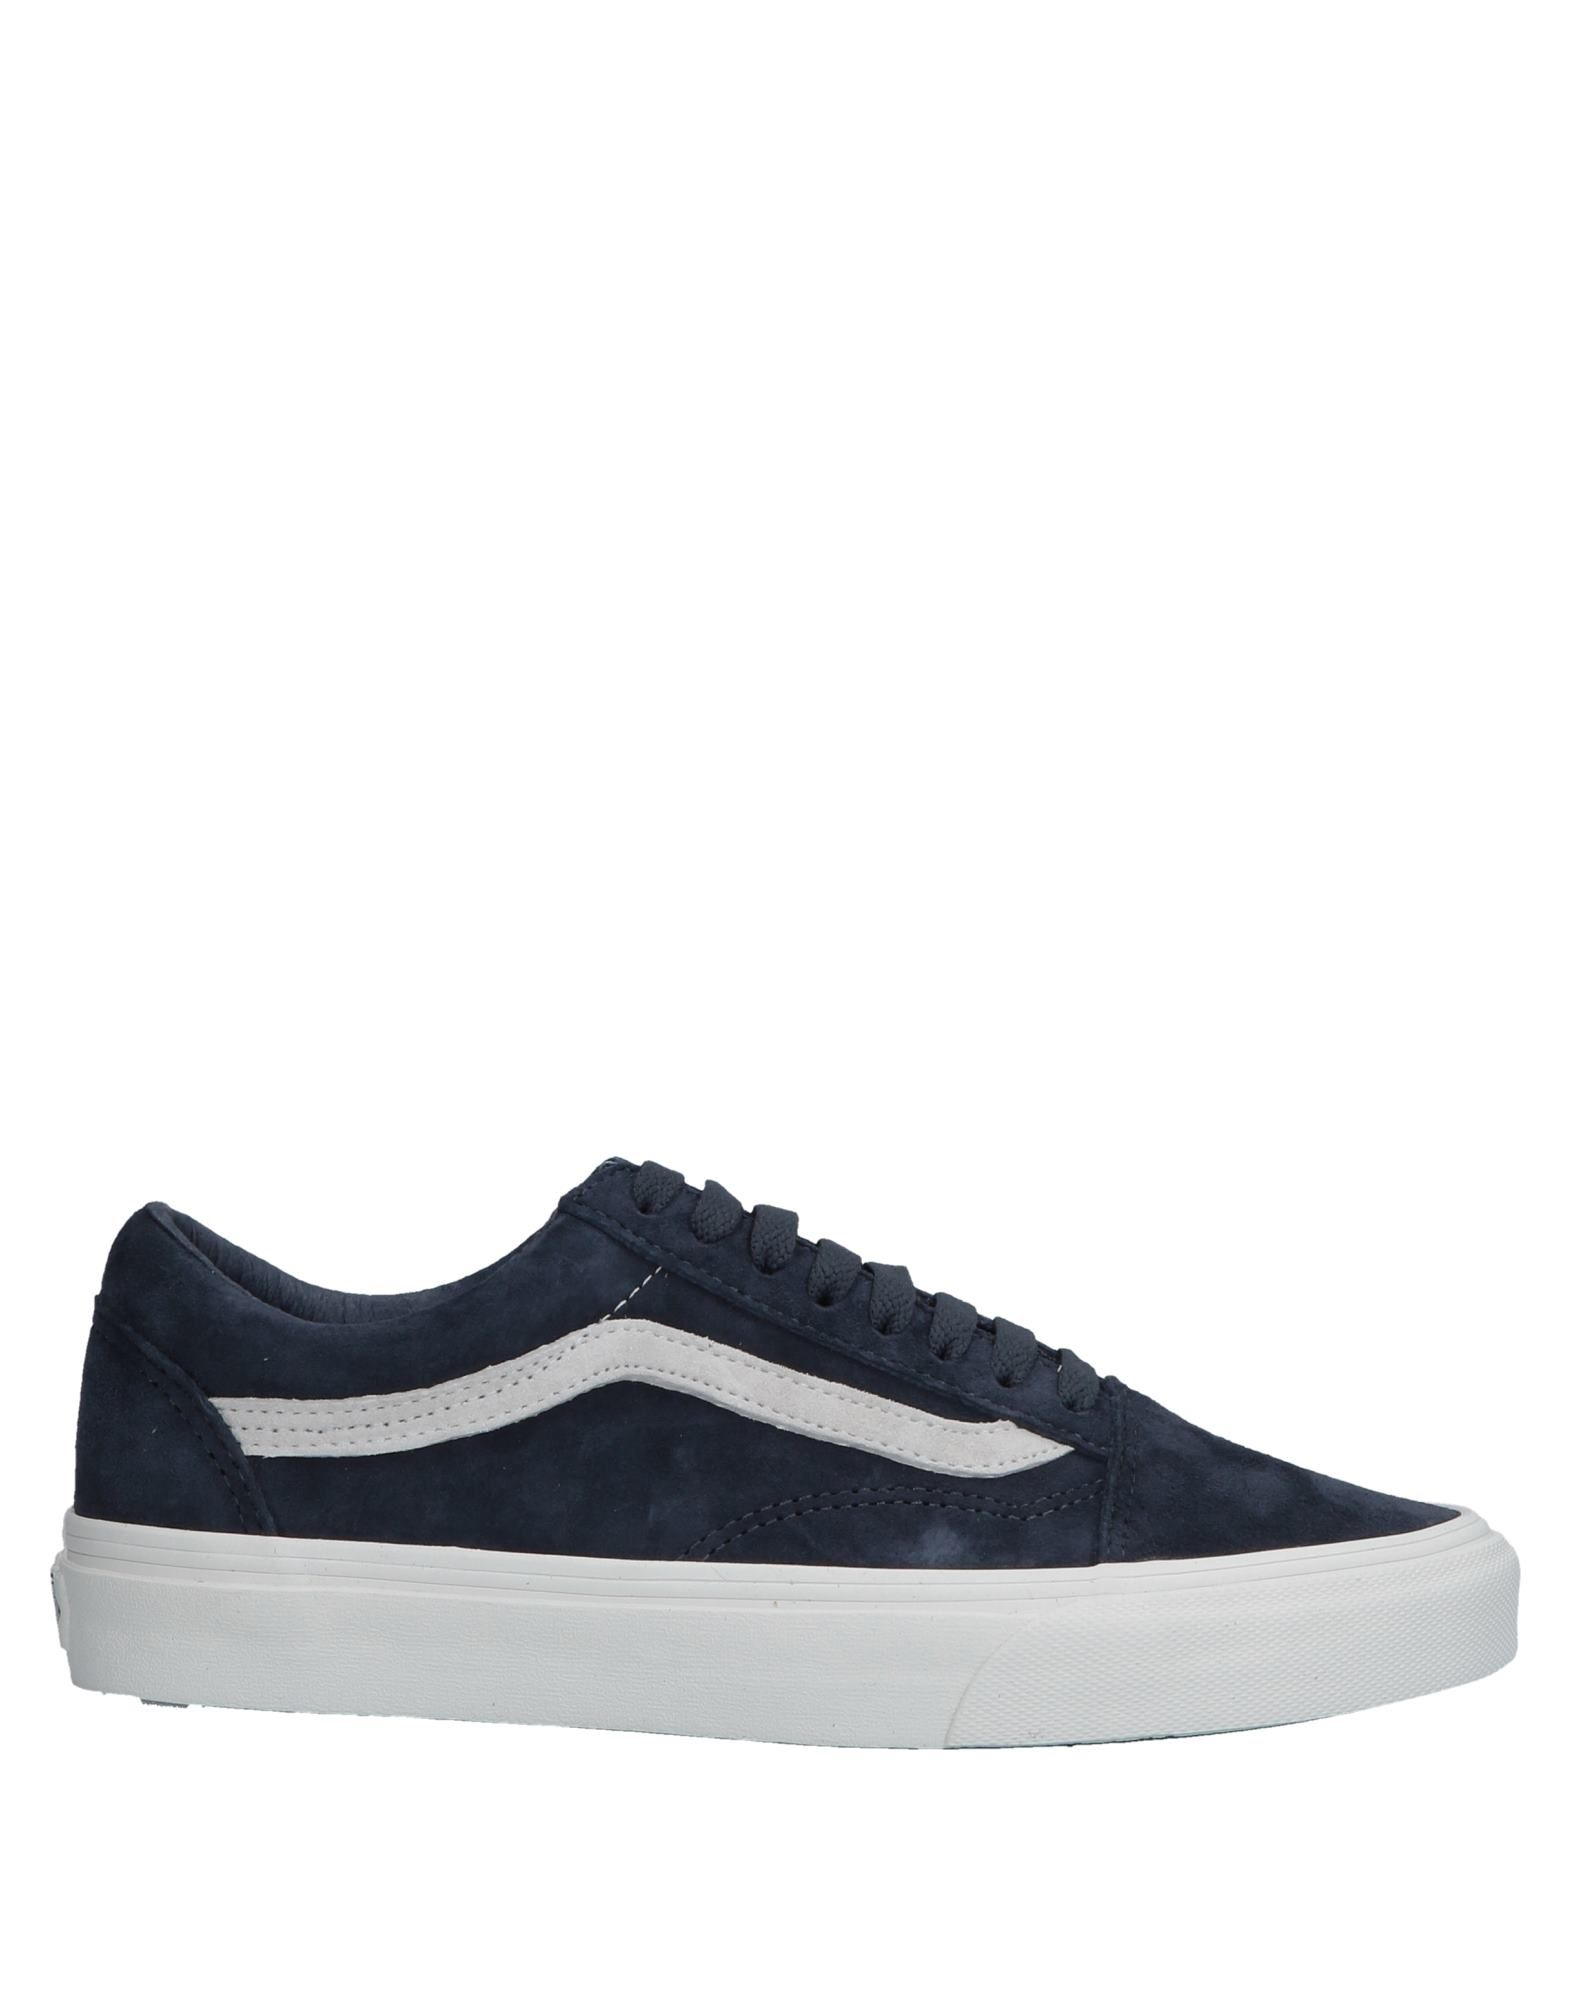 Vans Sneakers - Women Vans Sneakers online on 11573707DF  United Kingdom - 11573707DF on 62e07c